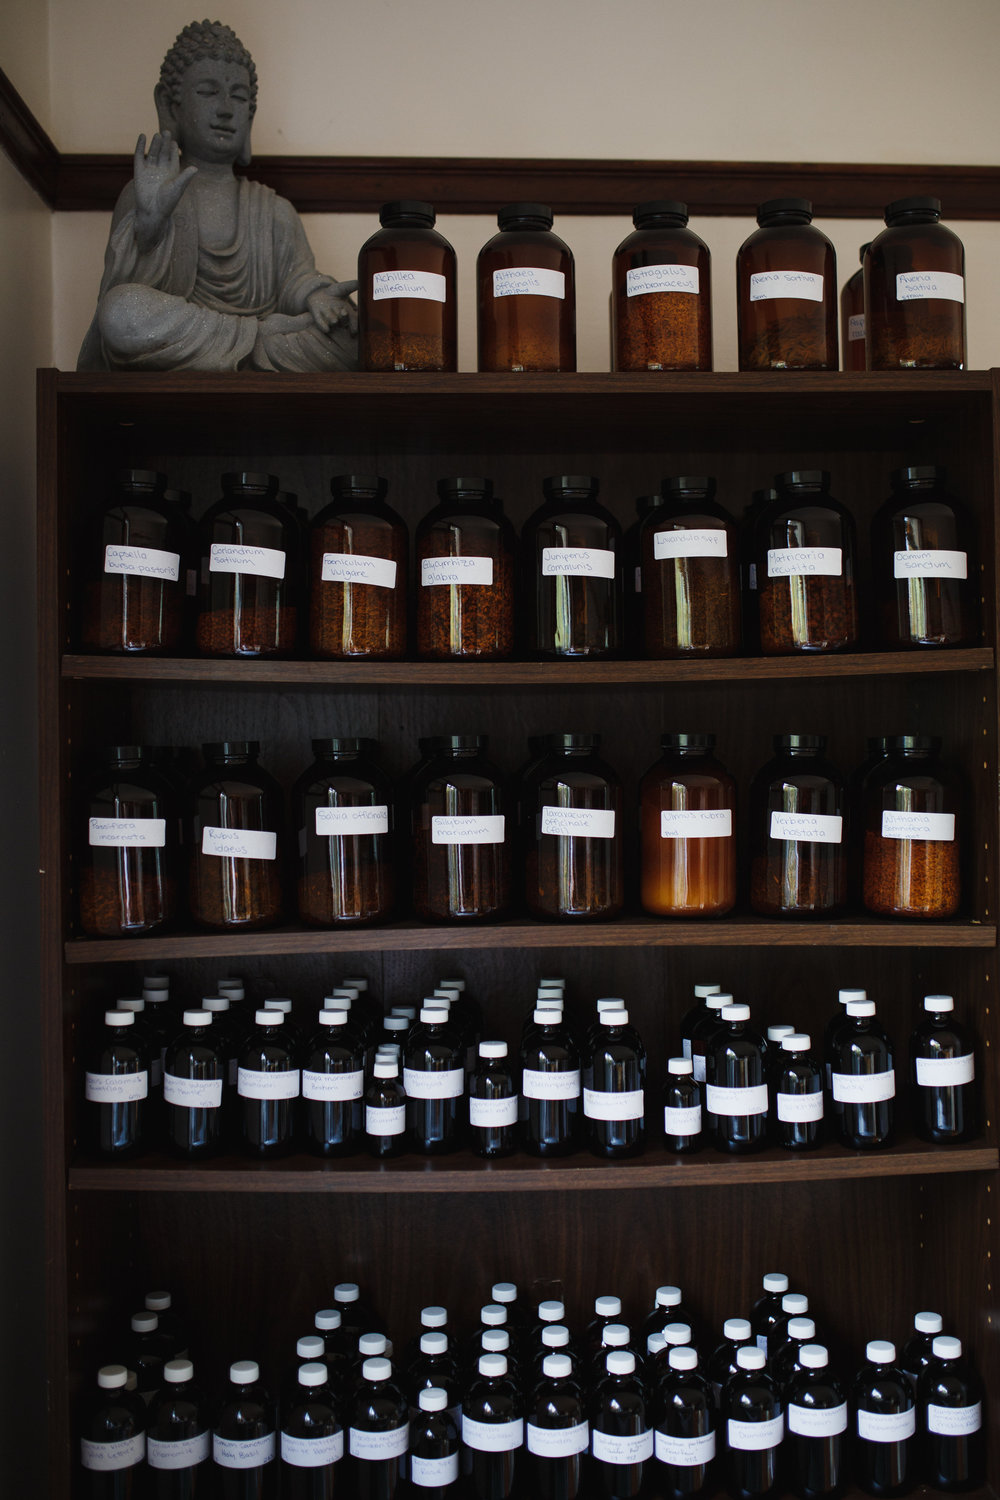 Herbal medicine apothecary of tinctures and teas